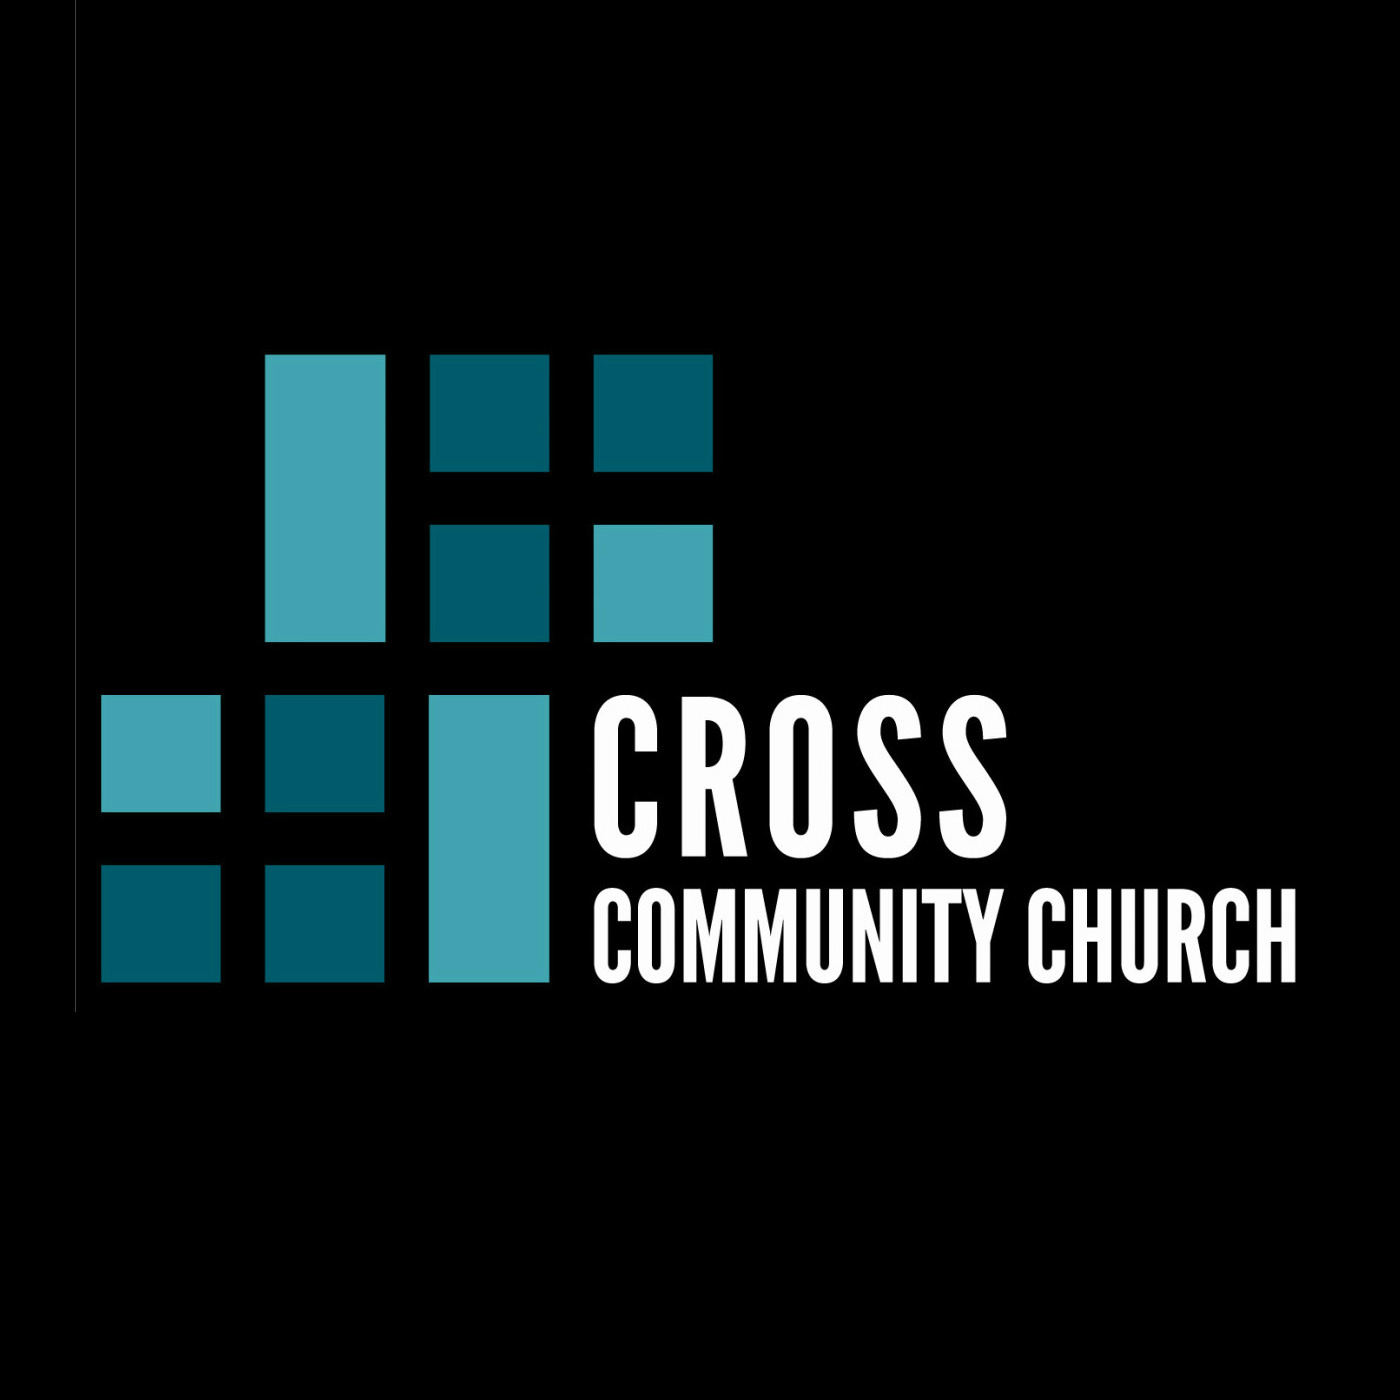 Cross Community Church - Katy, TX